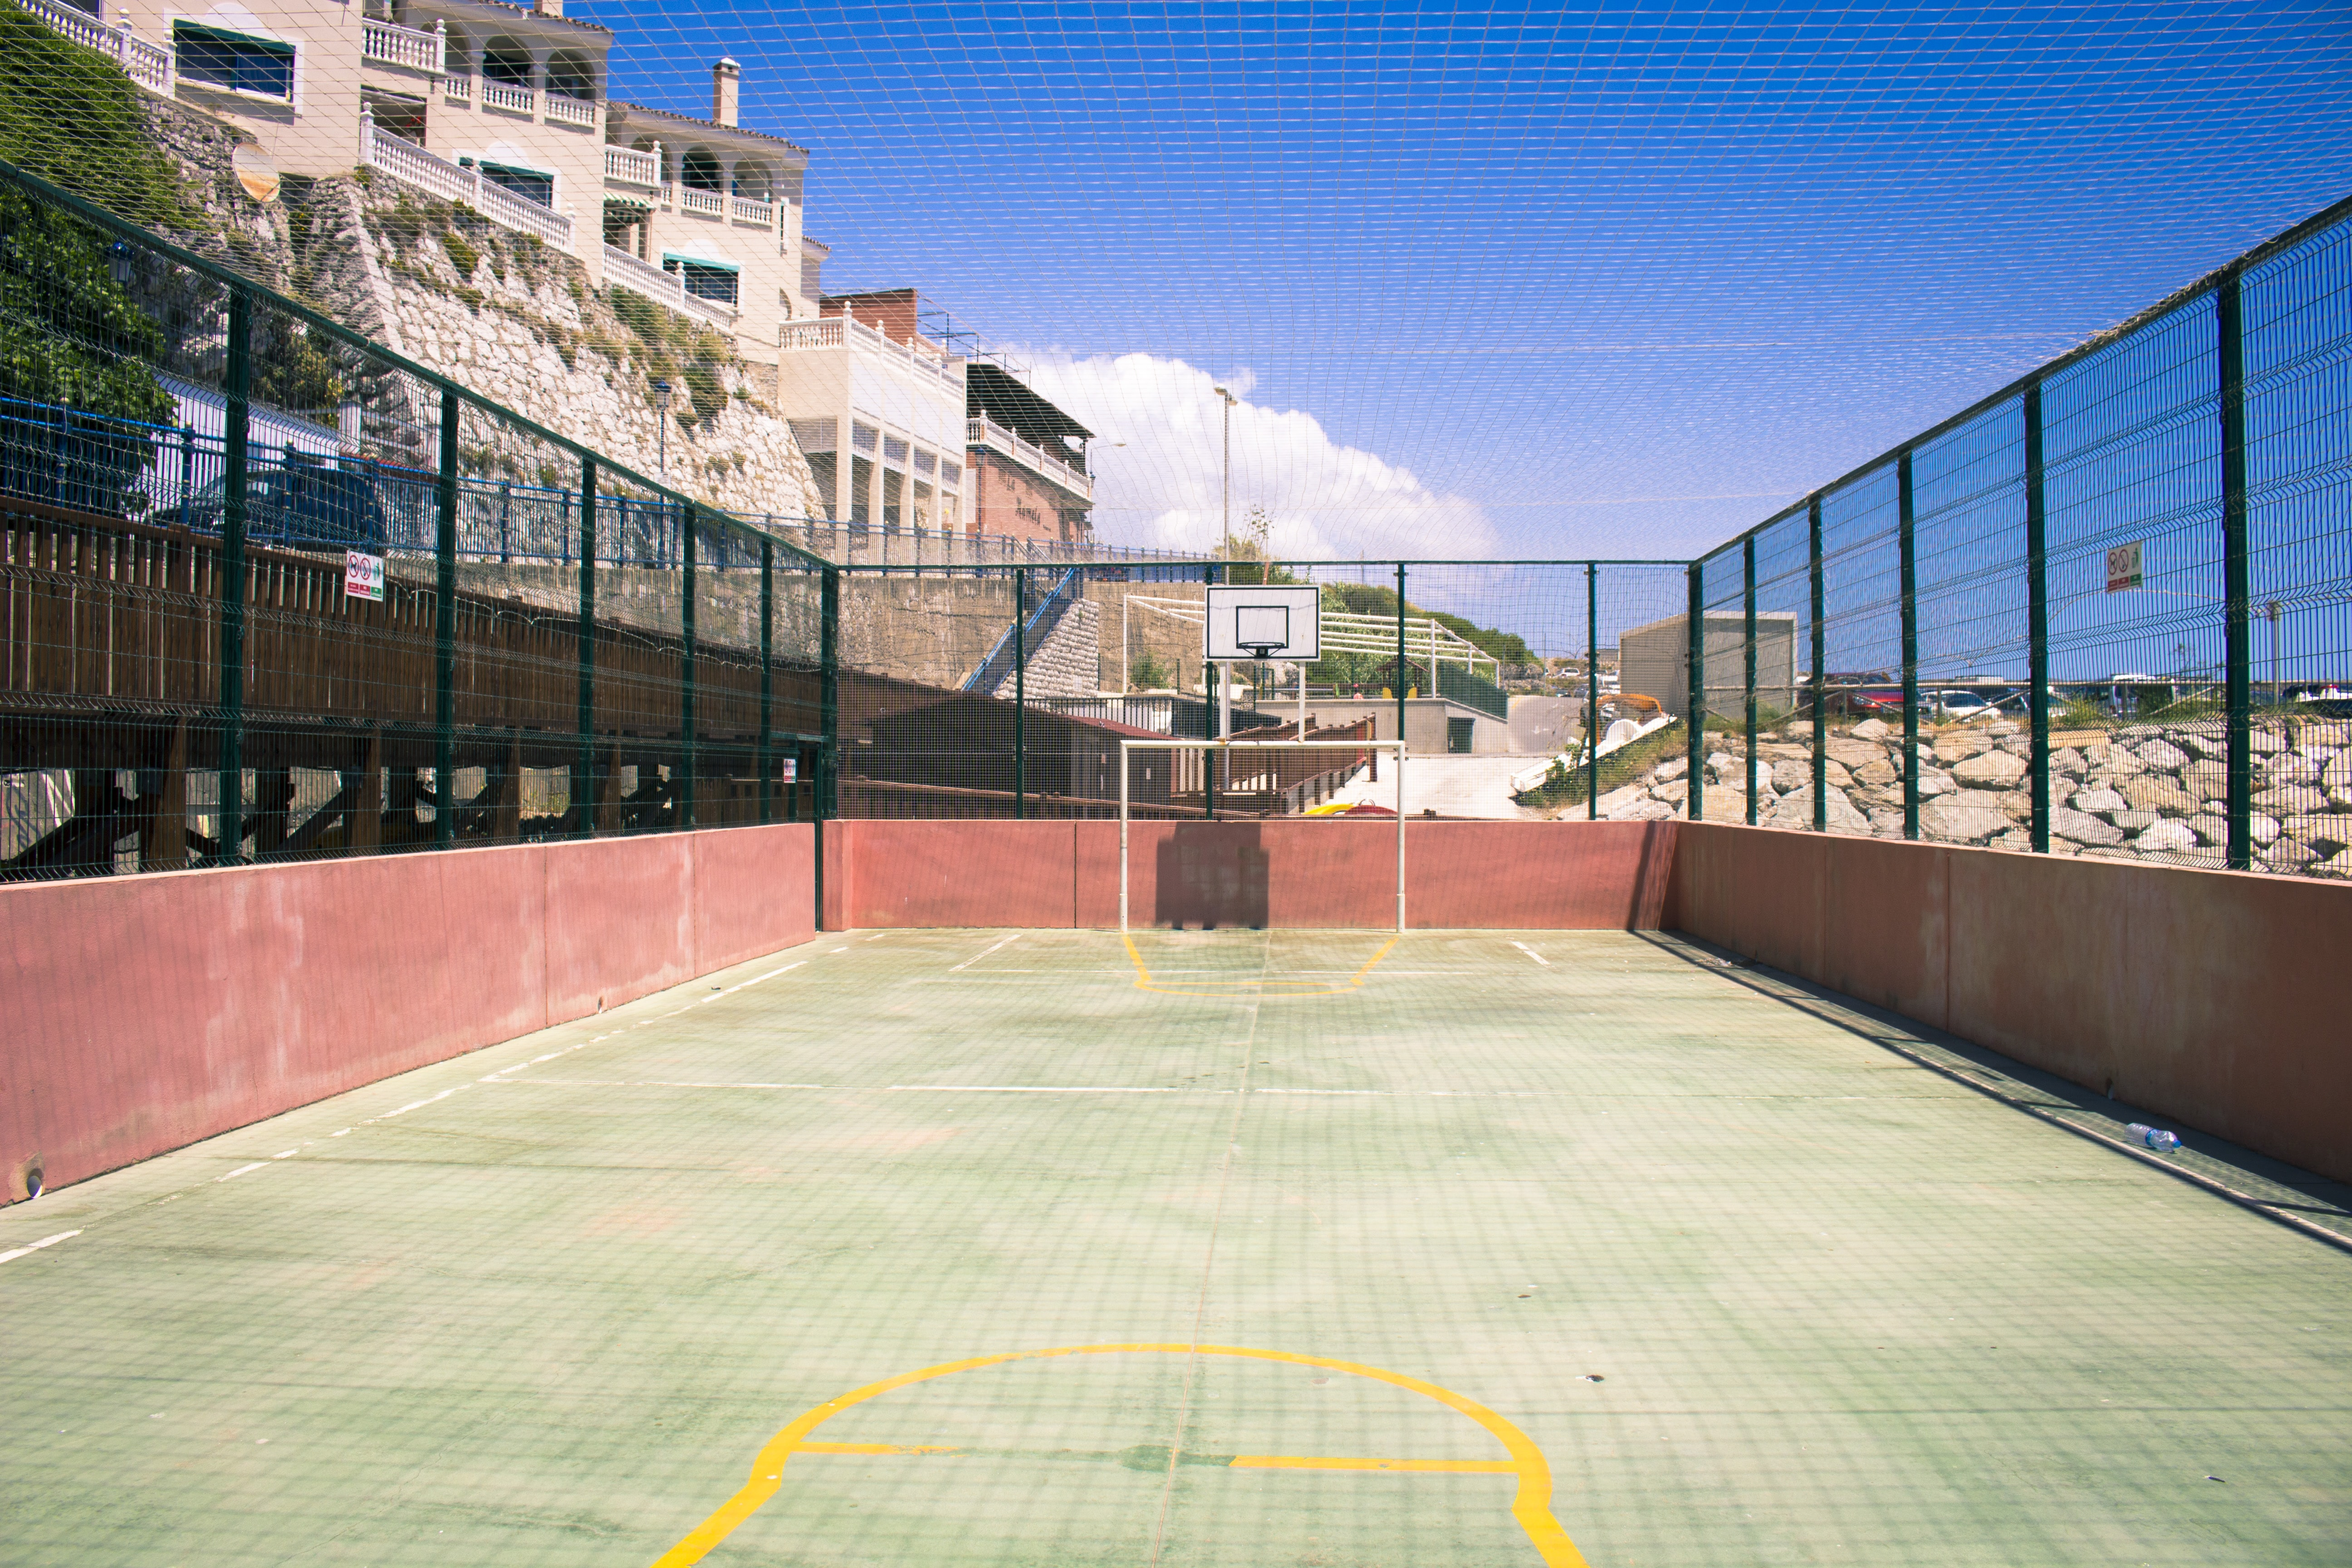 green concrete court